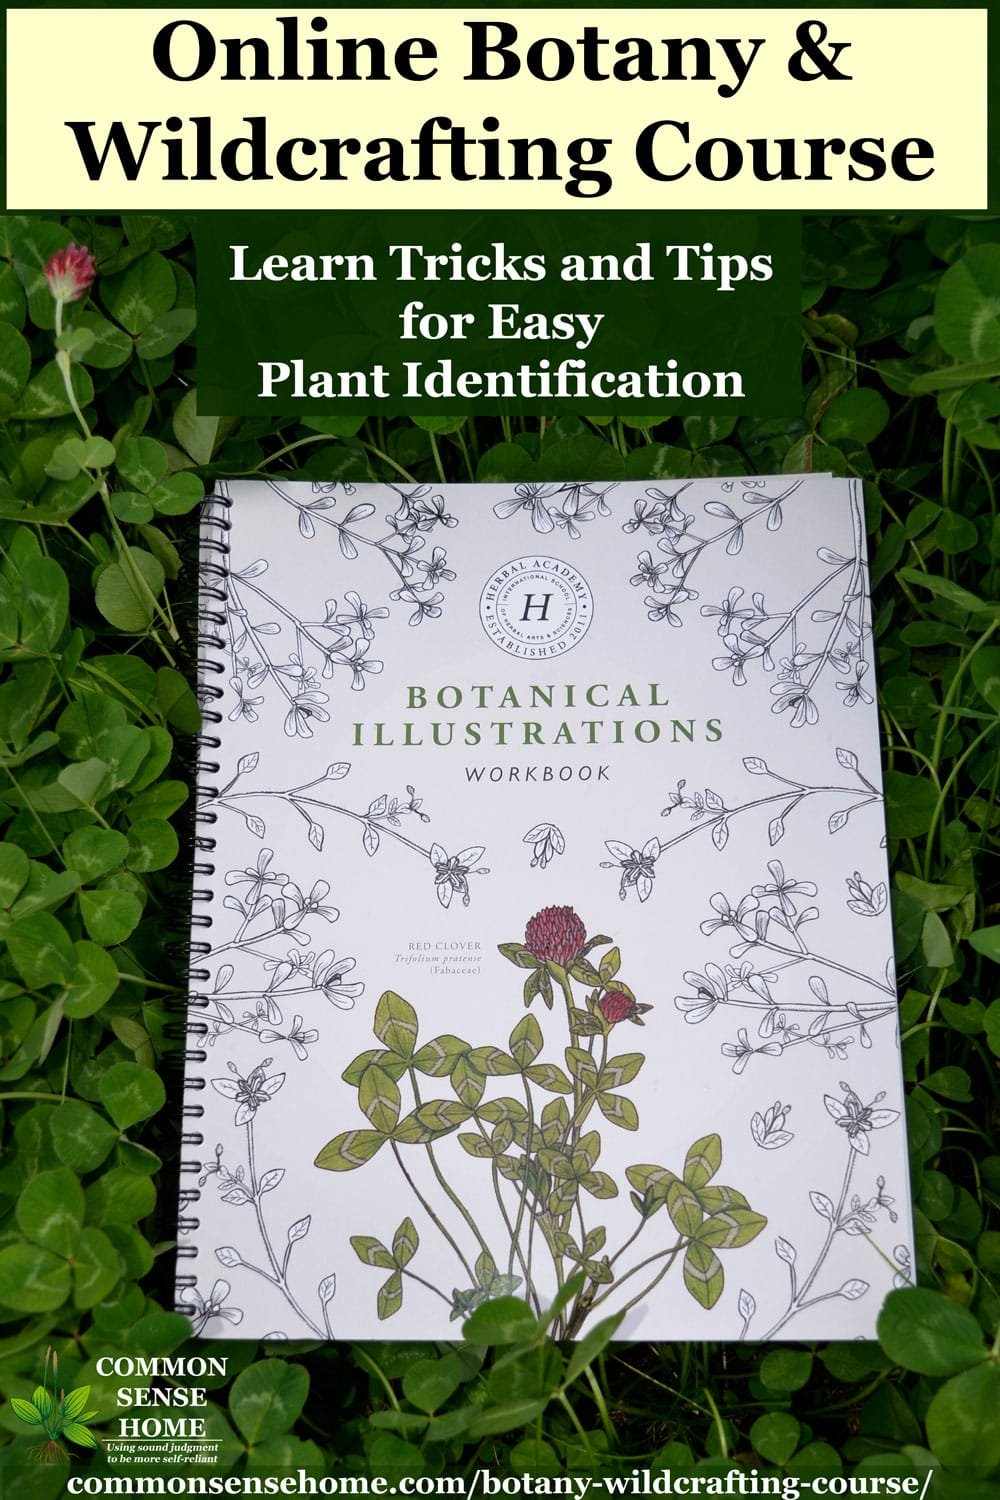 Botanical Illustrations Notebook in a patch of clover